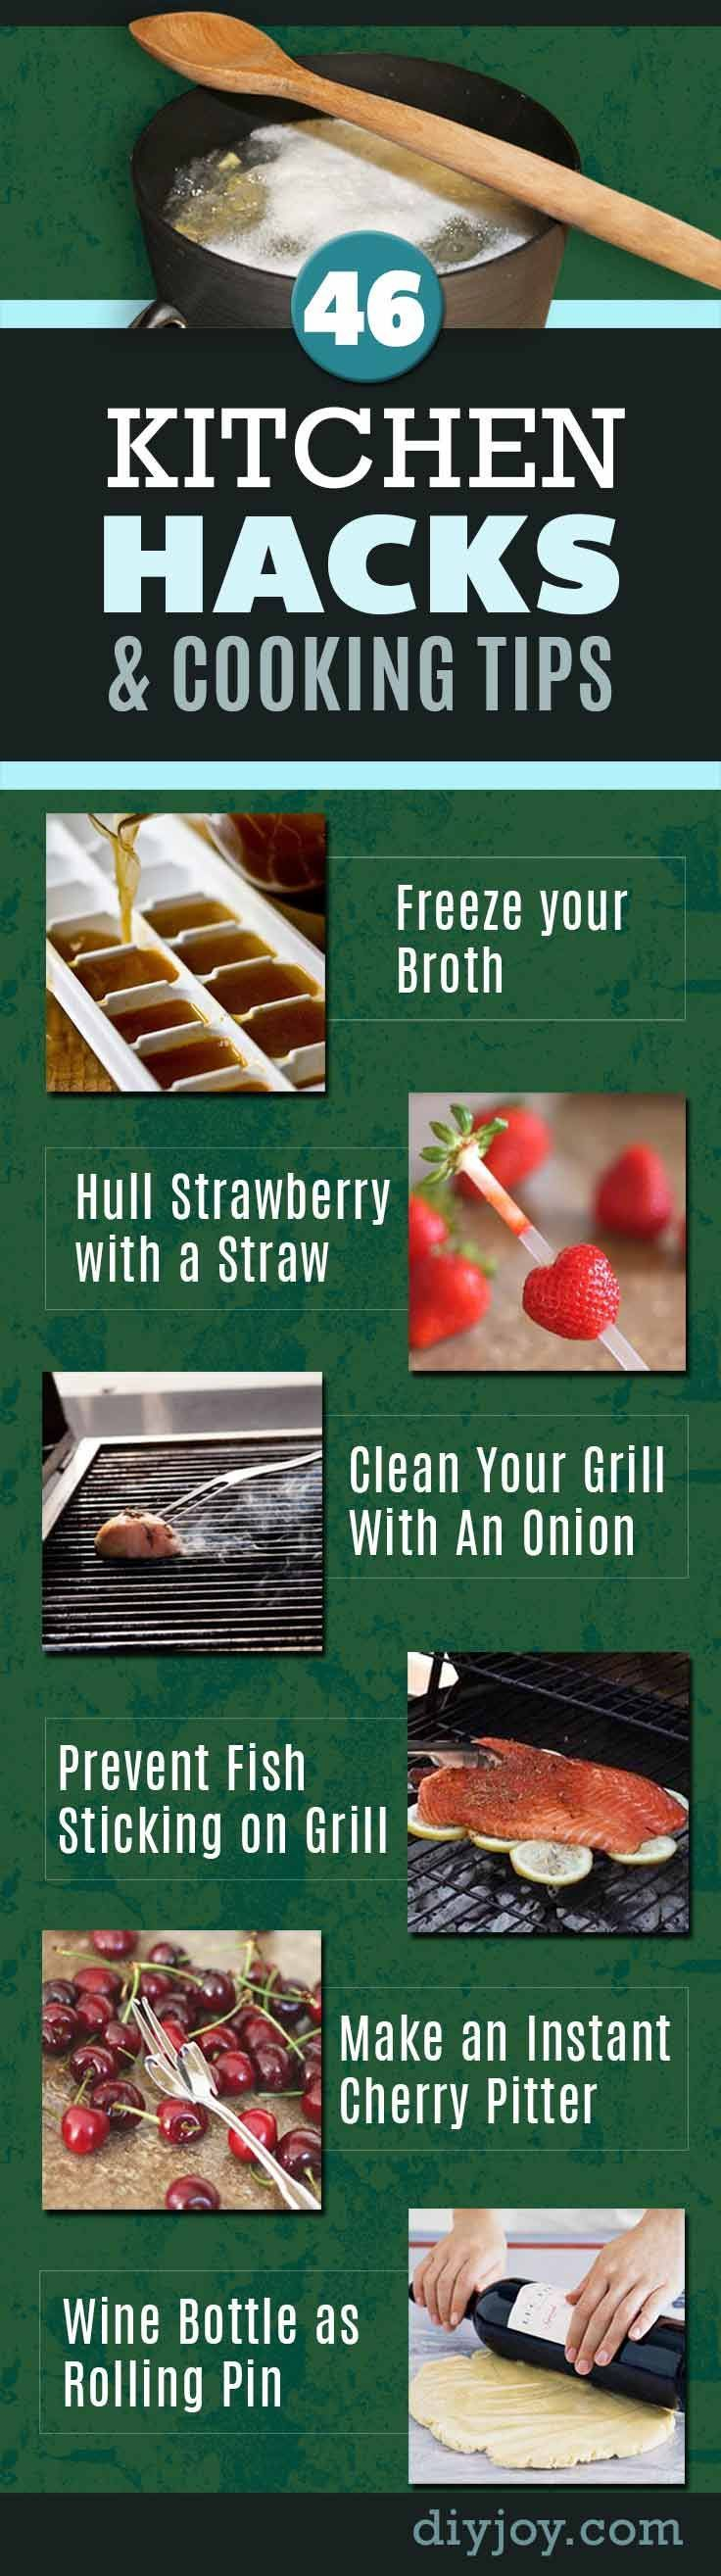 46 Cool Cooking Tips and DIY Kitchen Hacks